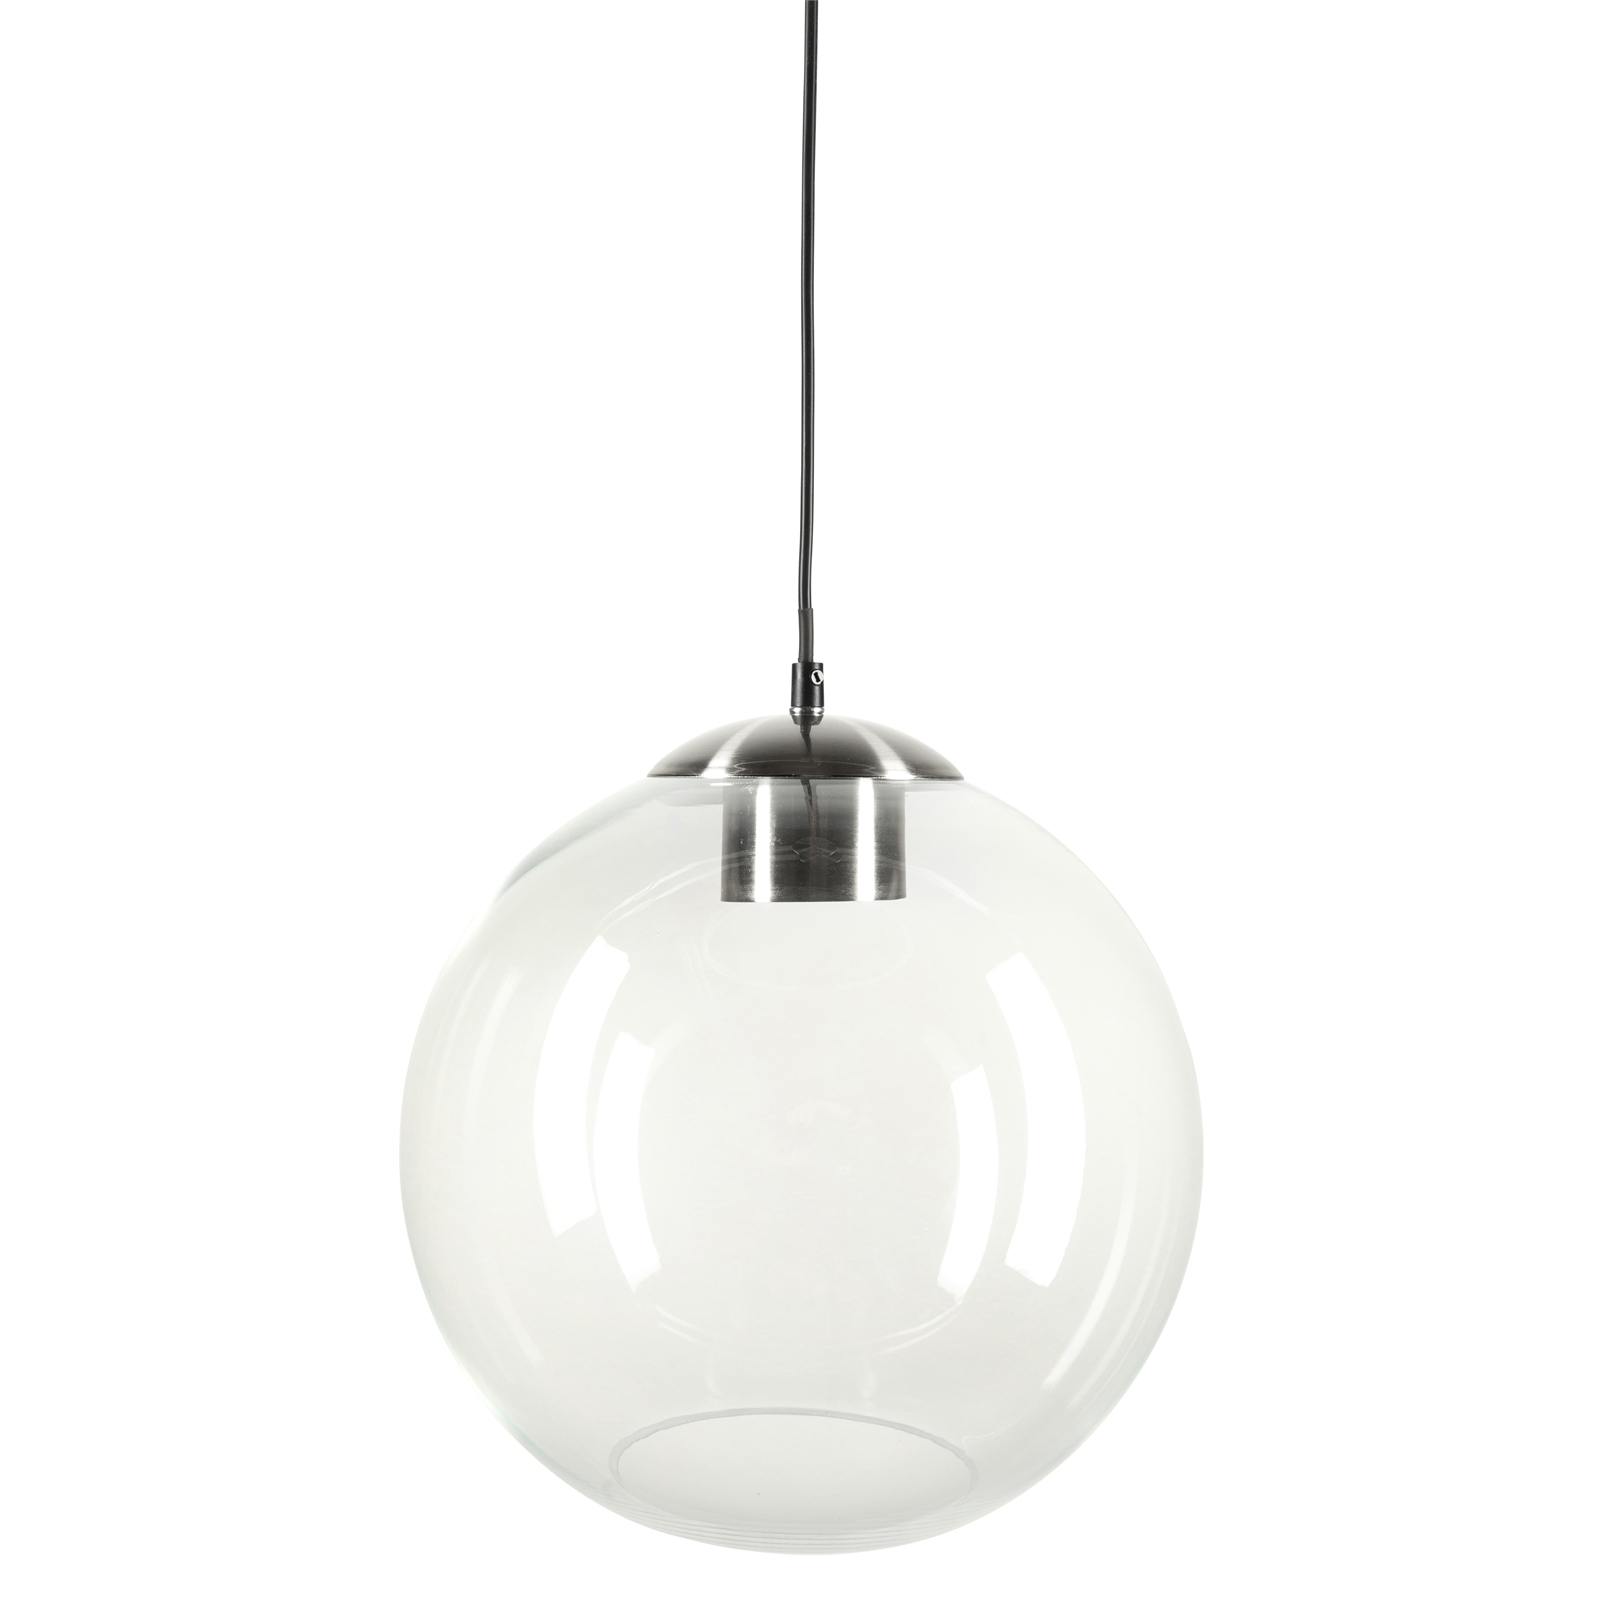 Brilliant 30cm Meridian Glass with Brushed Nickel Large Modern Classic Pendant Light